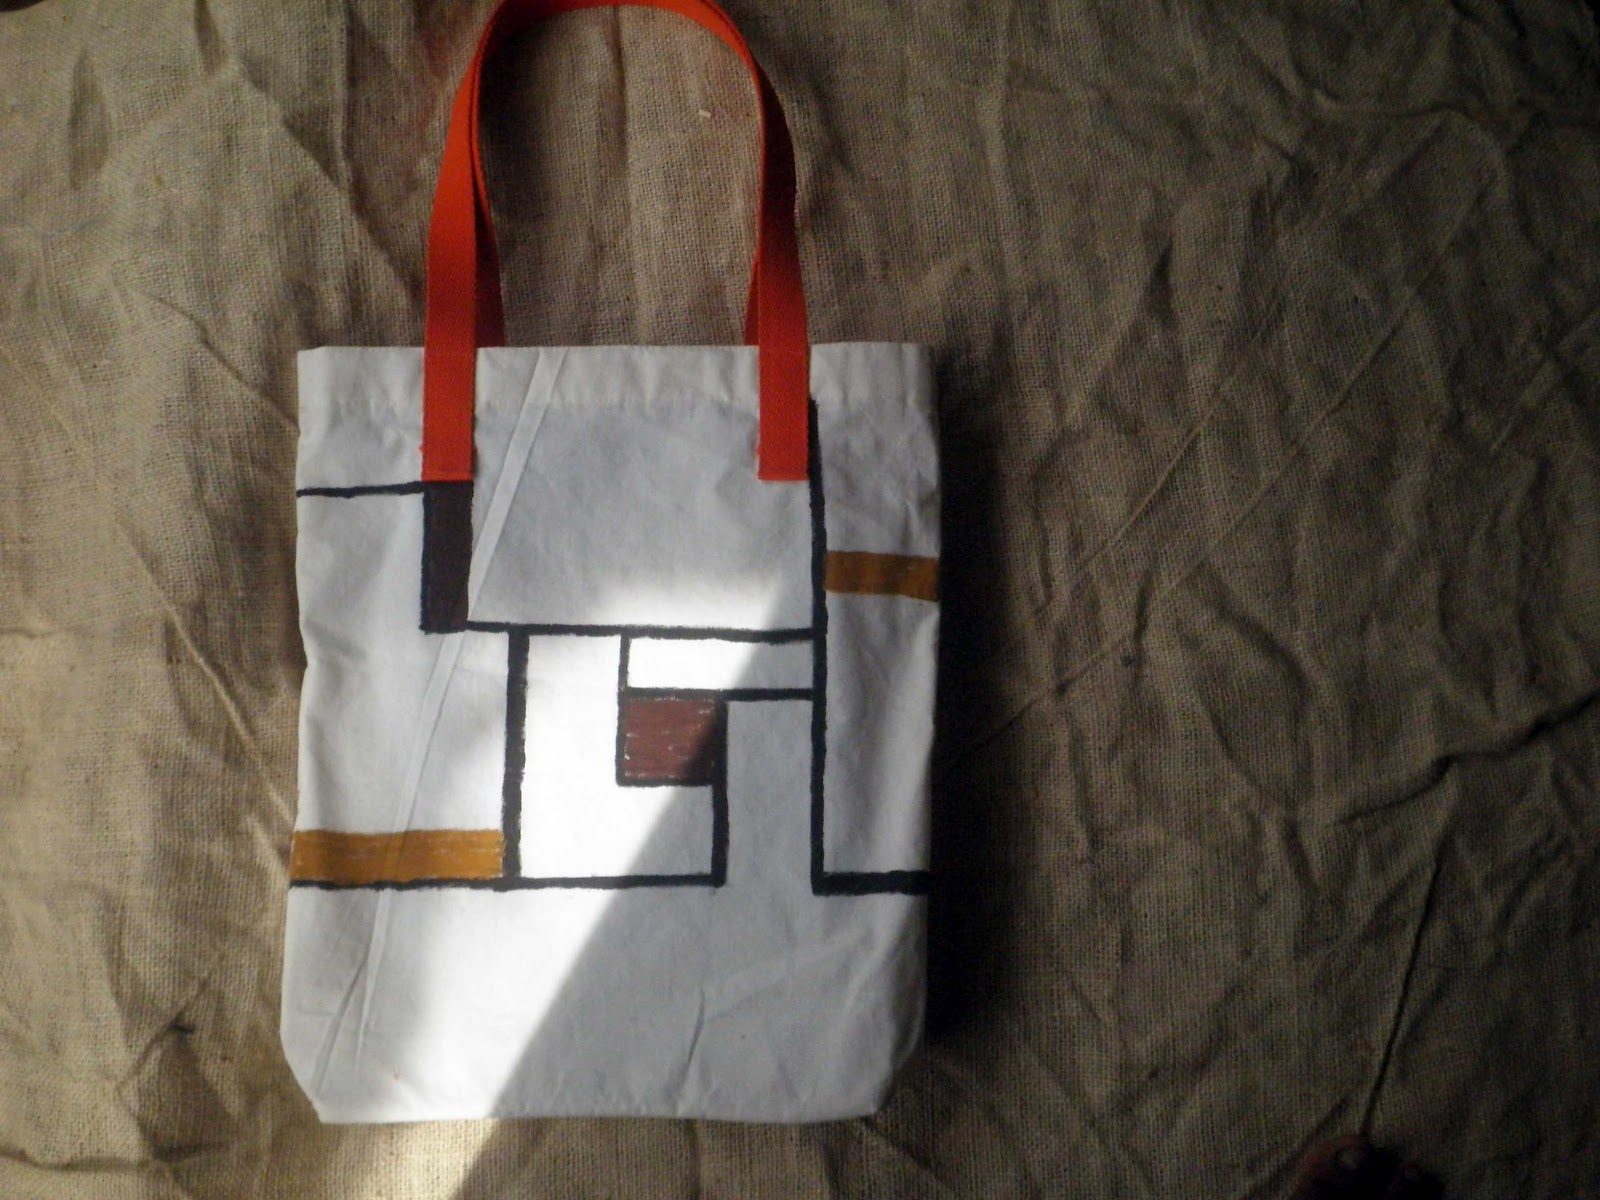 This is the latest variant of KimiBag Tote. Bags Canvas Painting . Blending  the bag and aesthetic expression through movement and color fields. themes  on ... f1fc7a955f